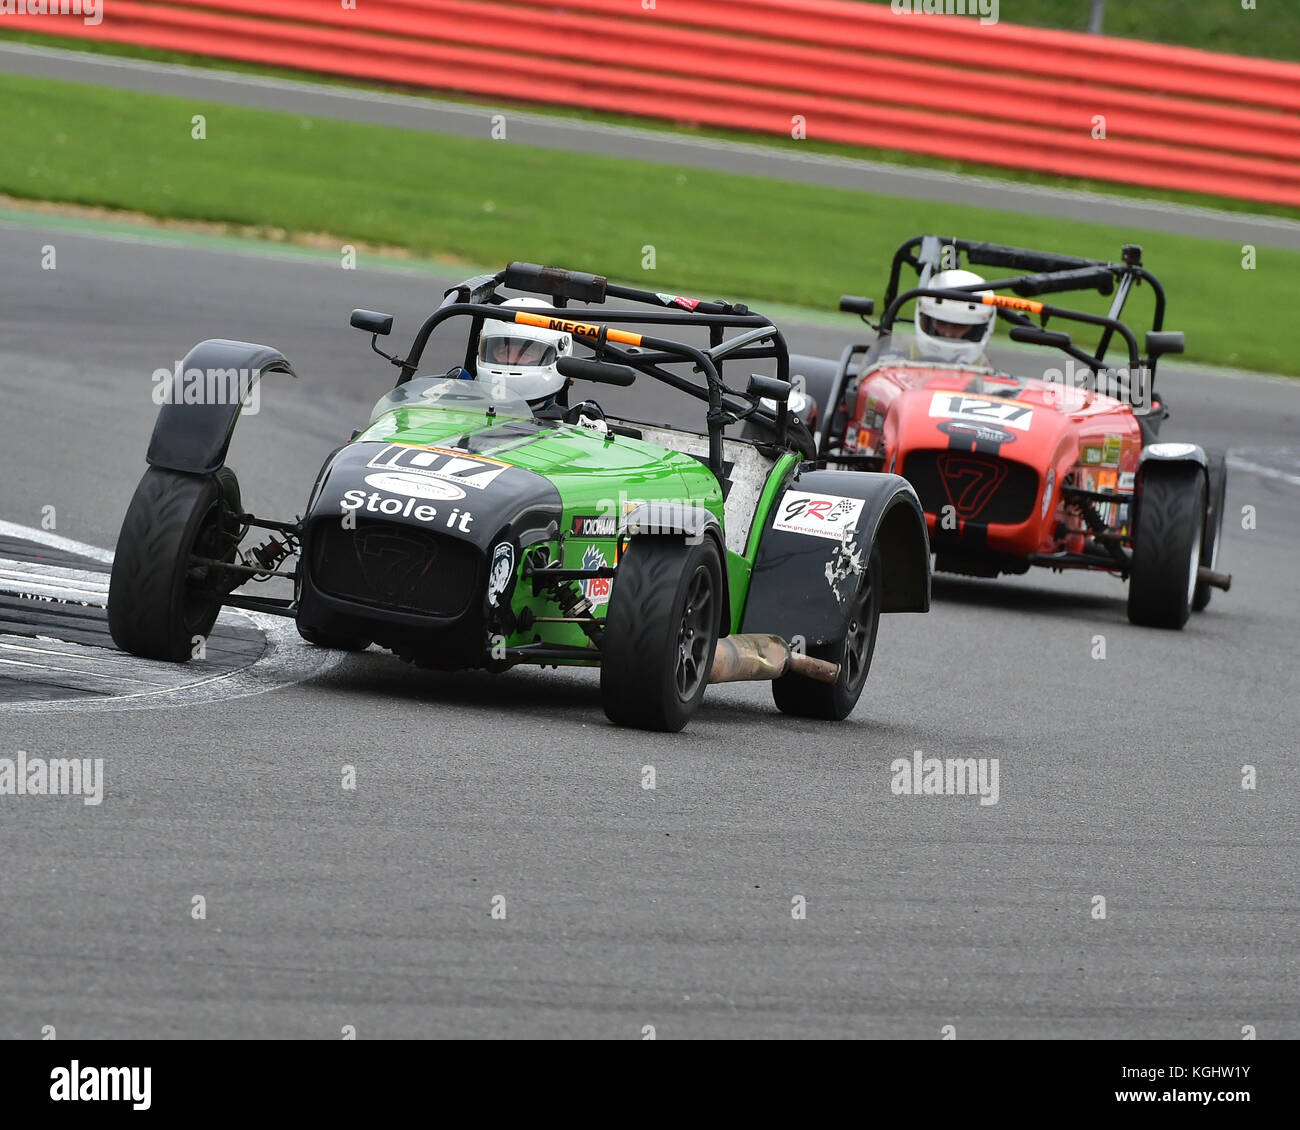 Used Caterham 7 For Sale: Rayment Stock Photos & Rayment Stock Images